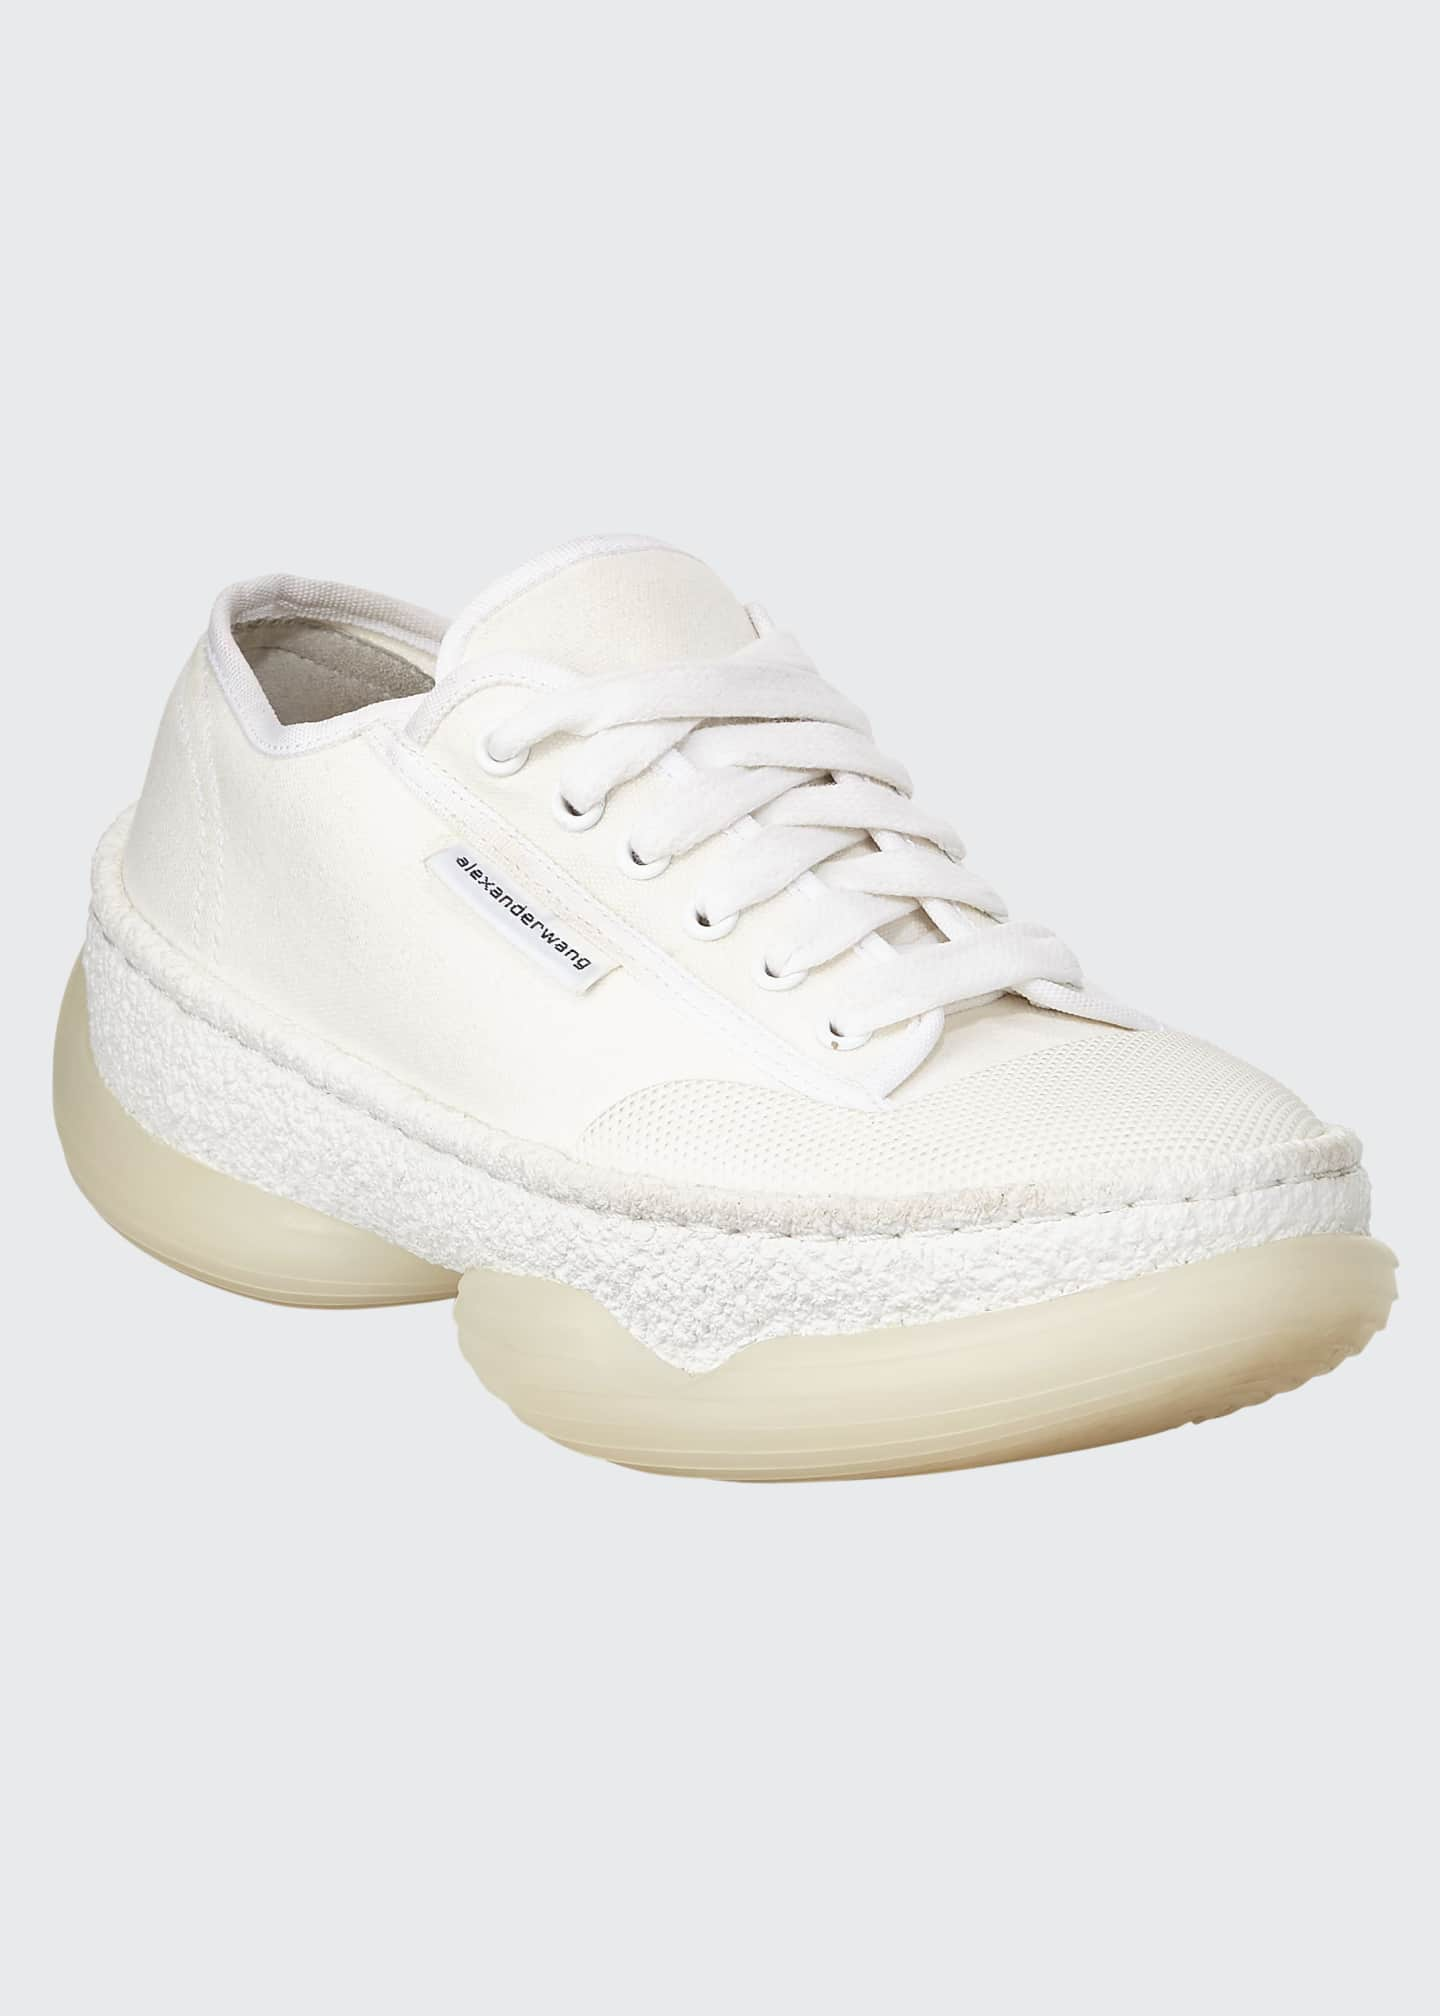 Alexander Wang A1 Low-Top Canvas Sneakers